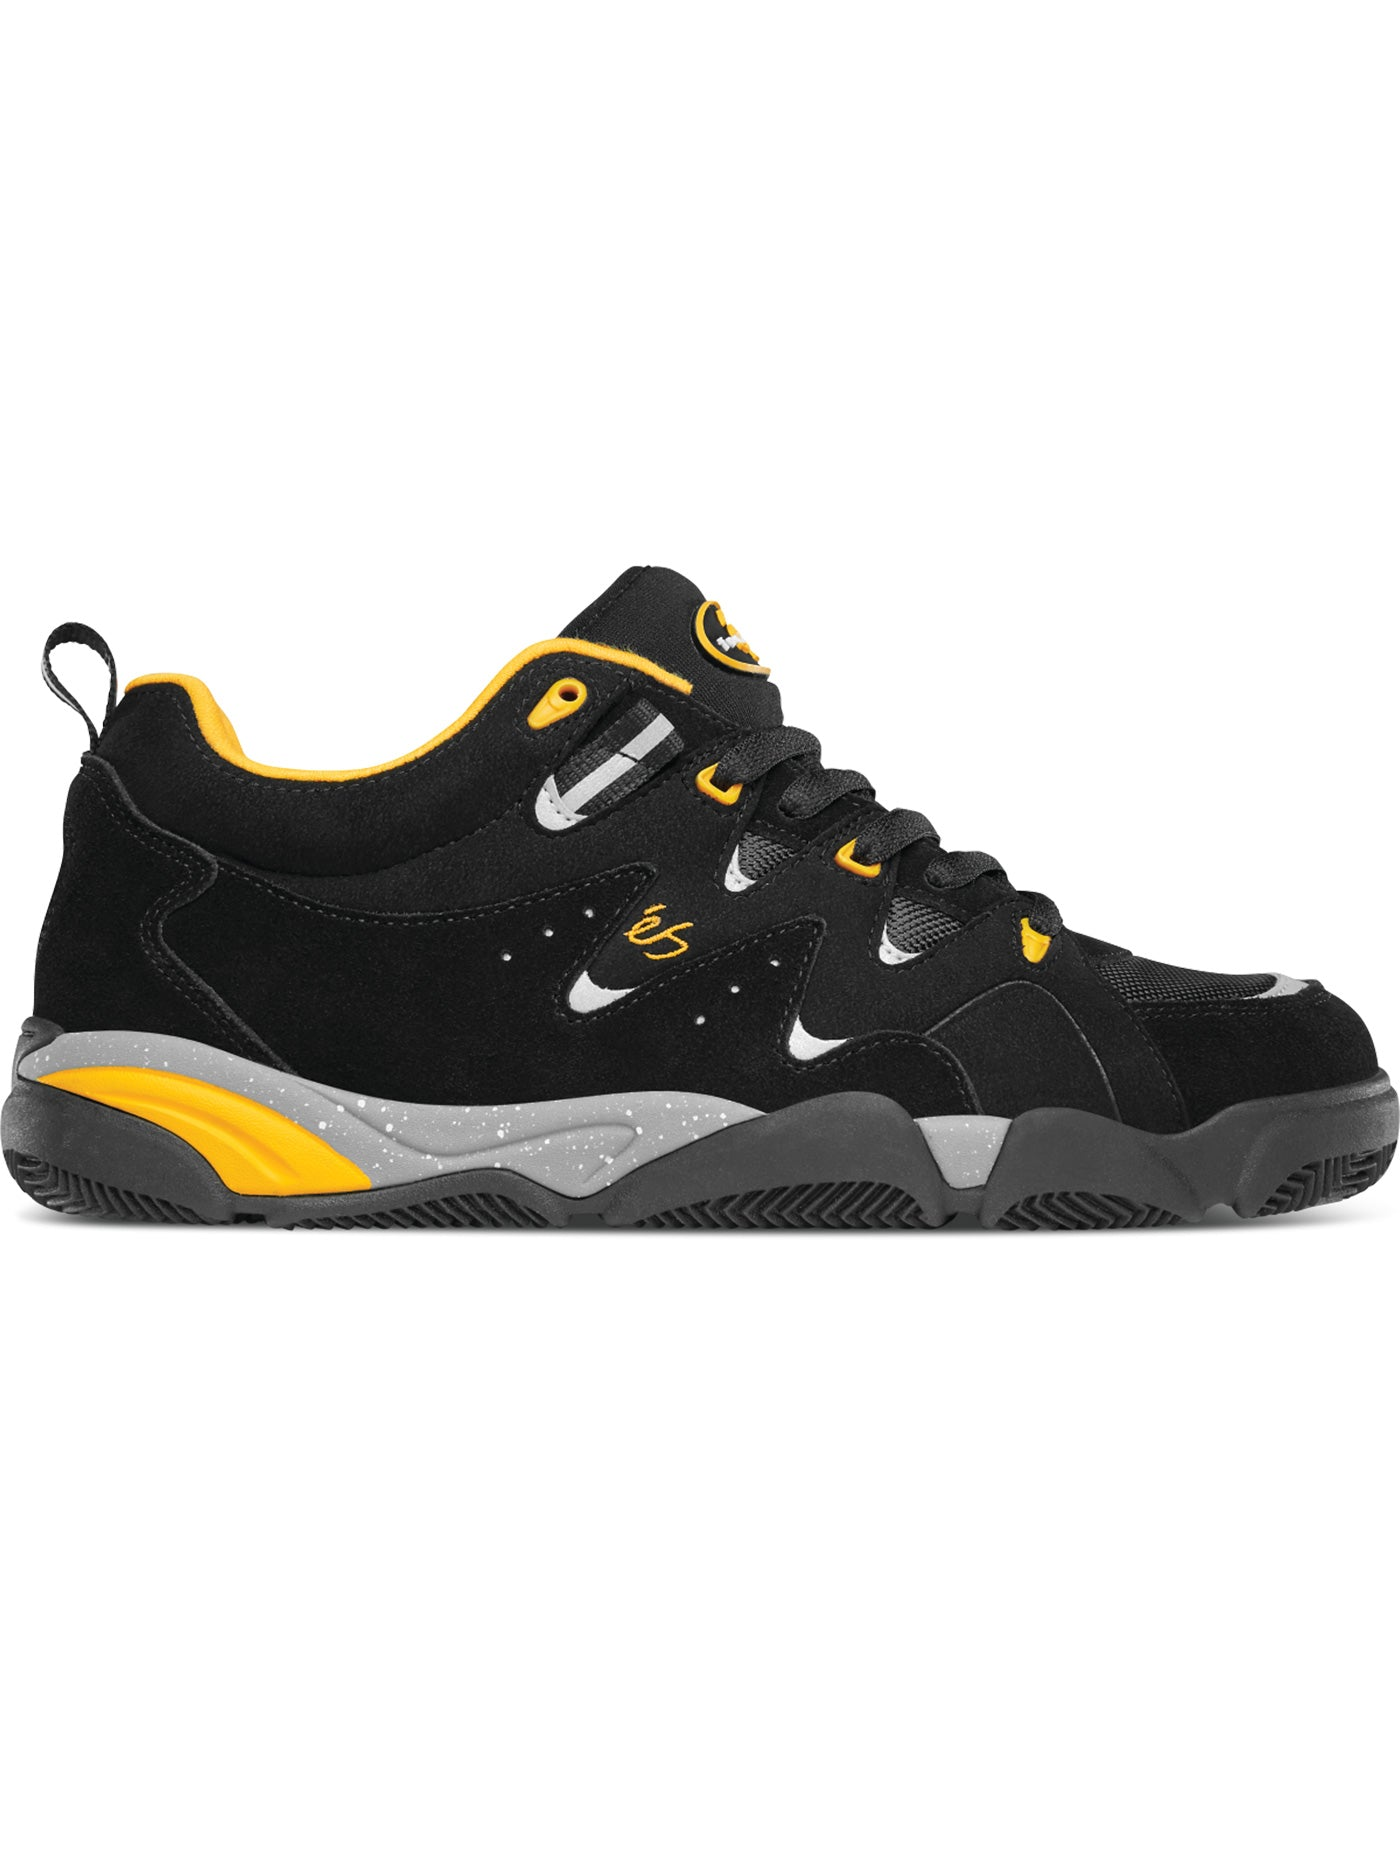 BLACK/YELLOW (974)